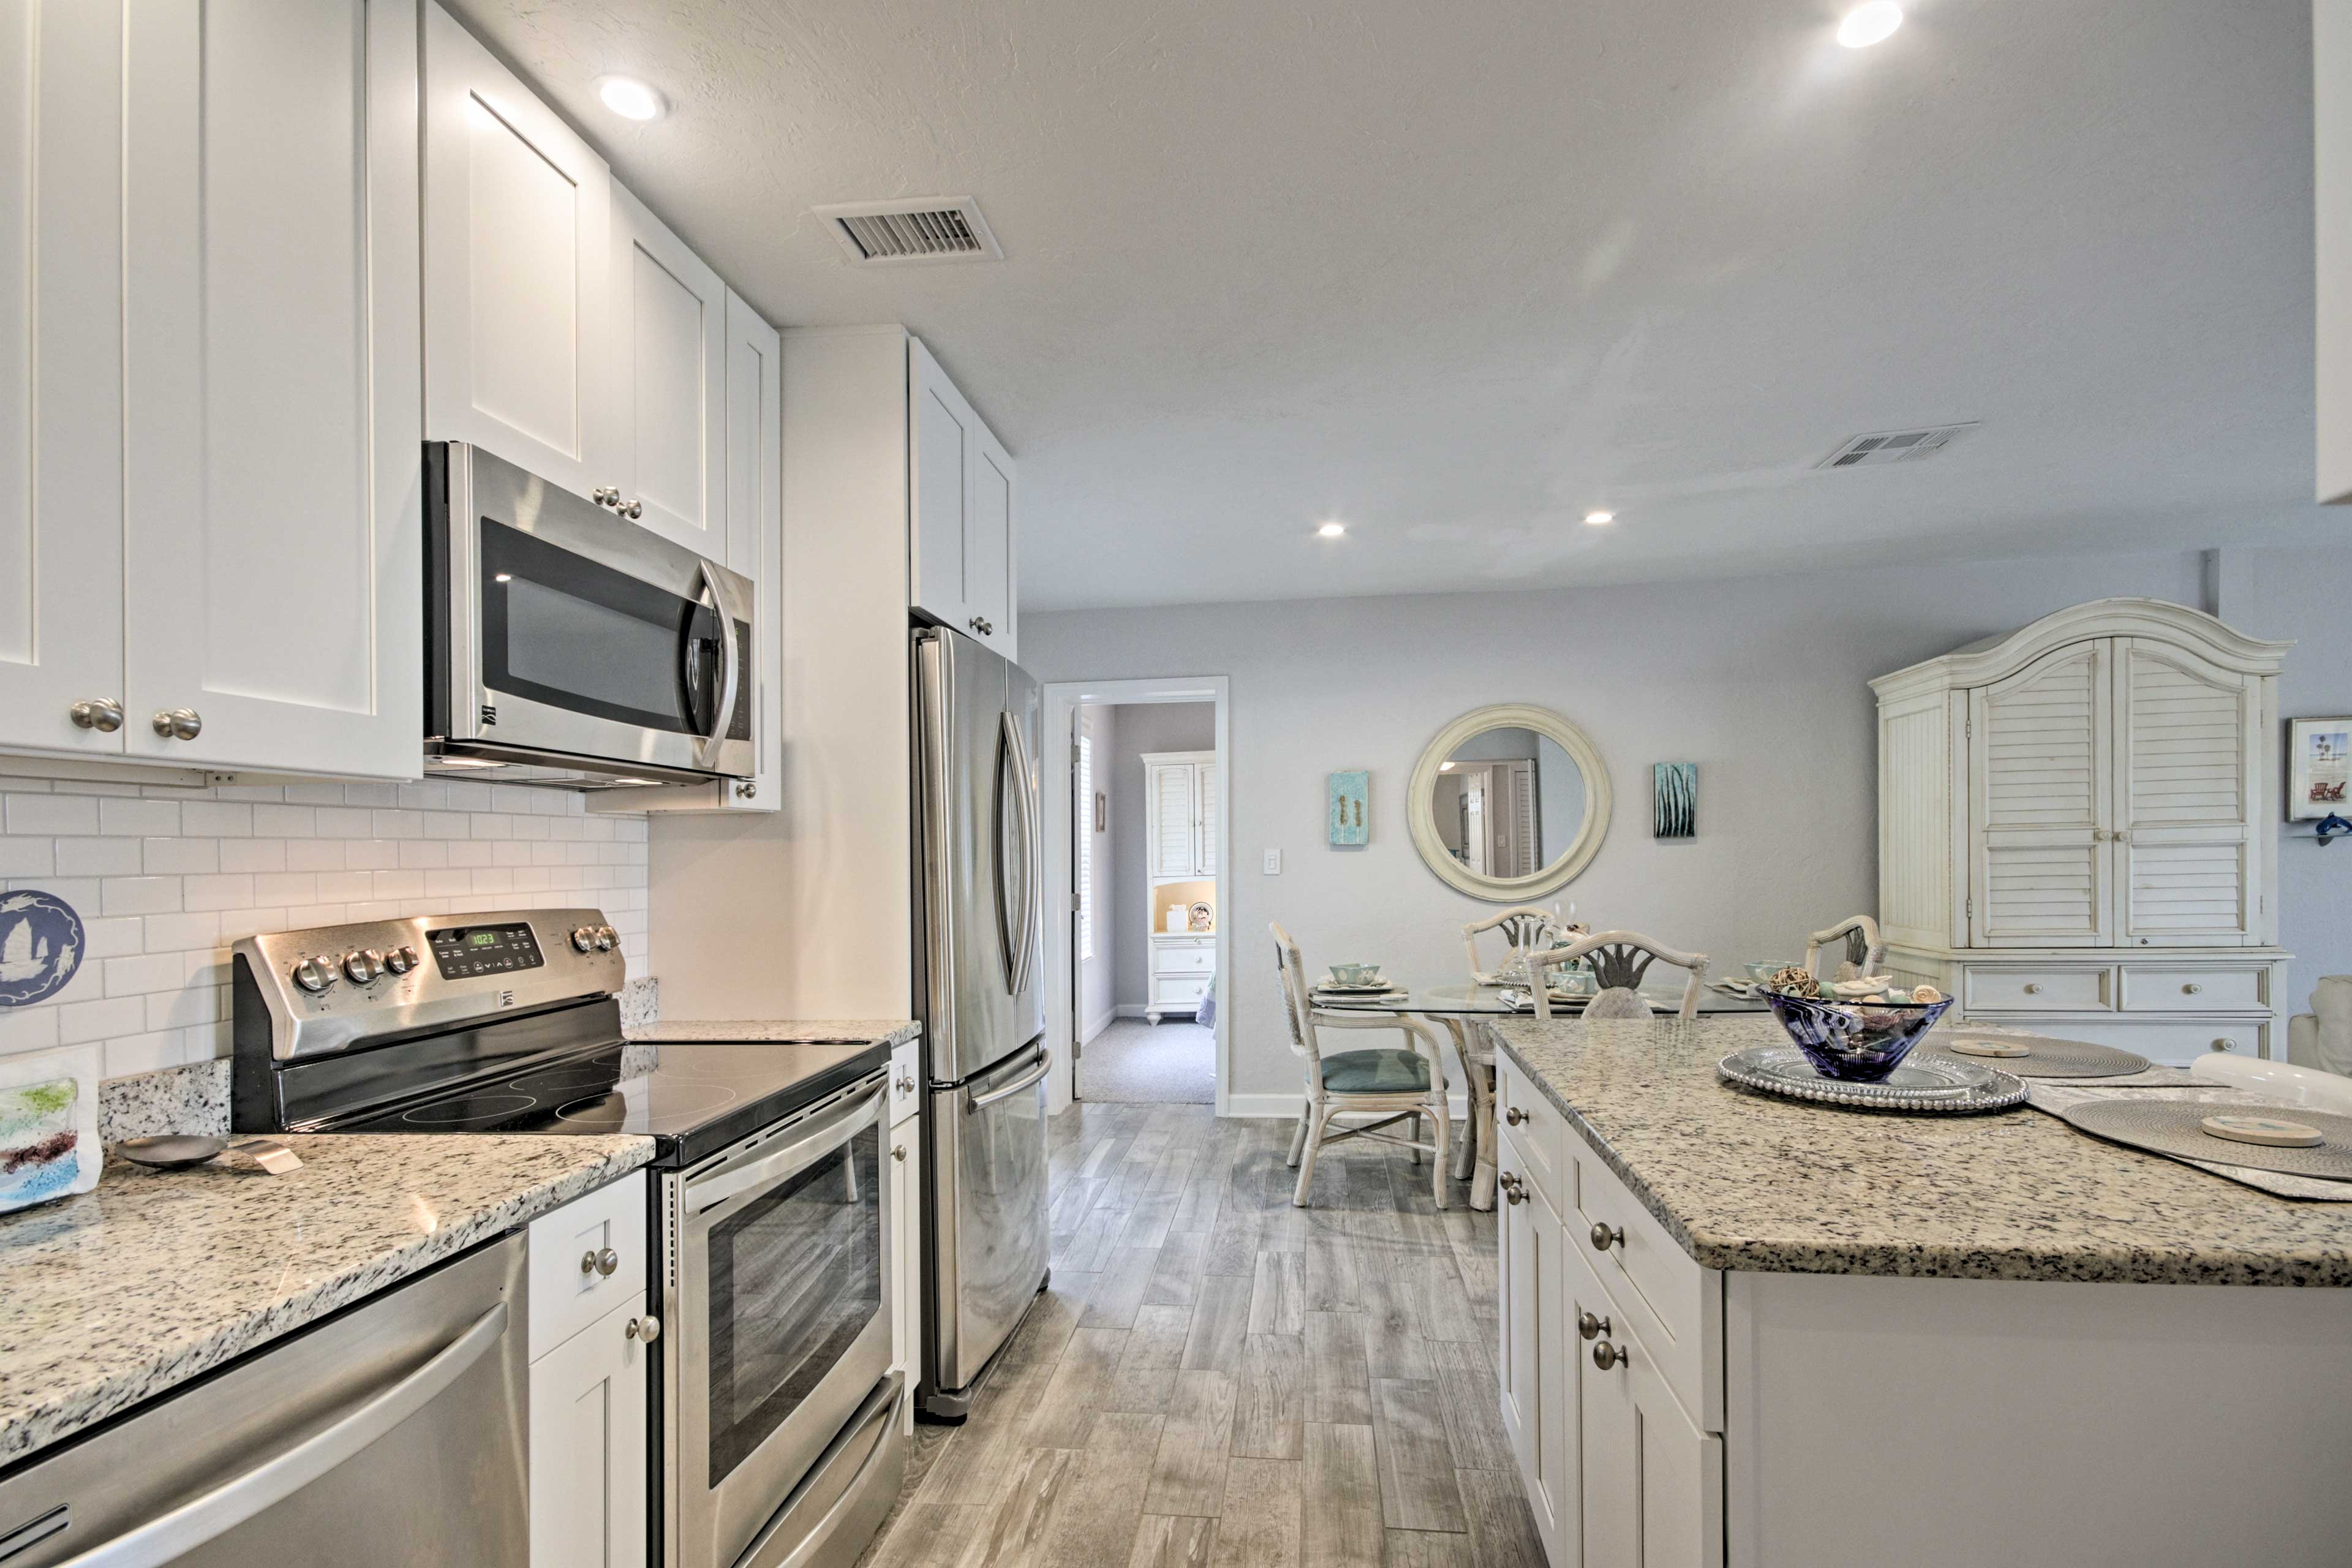 There is ample granite counter space to prep and serve on.